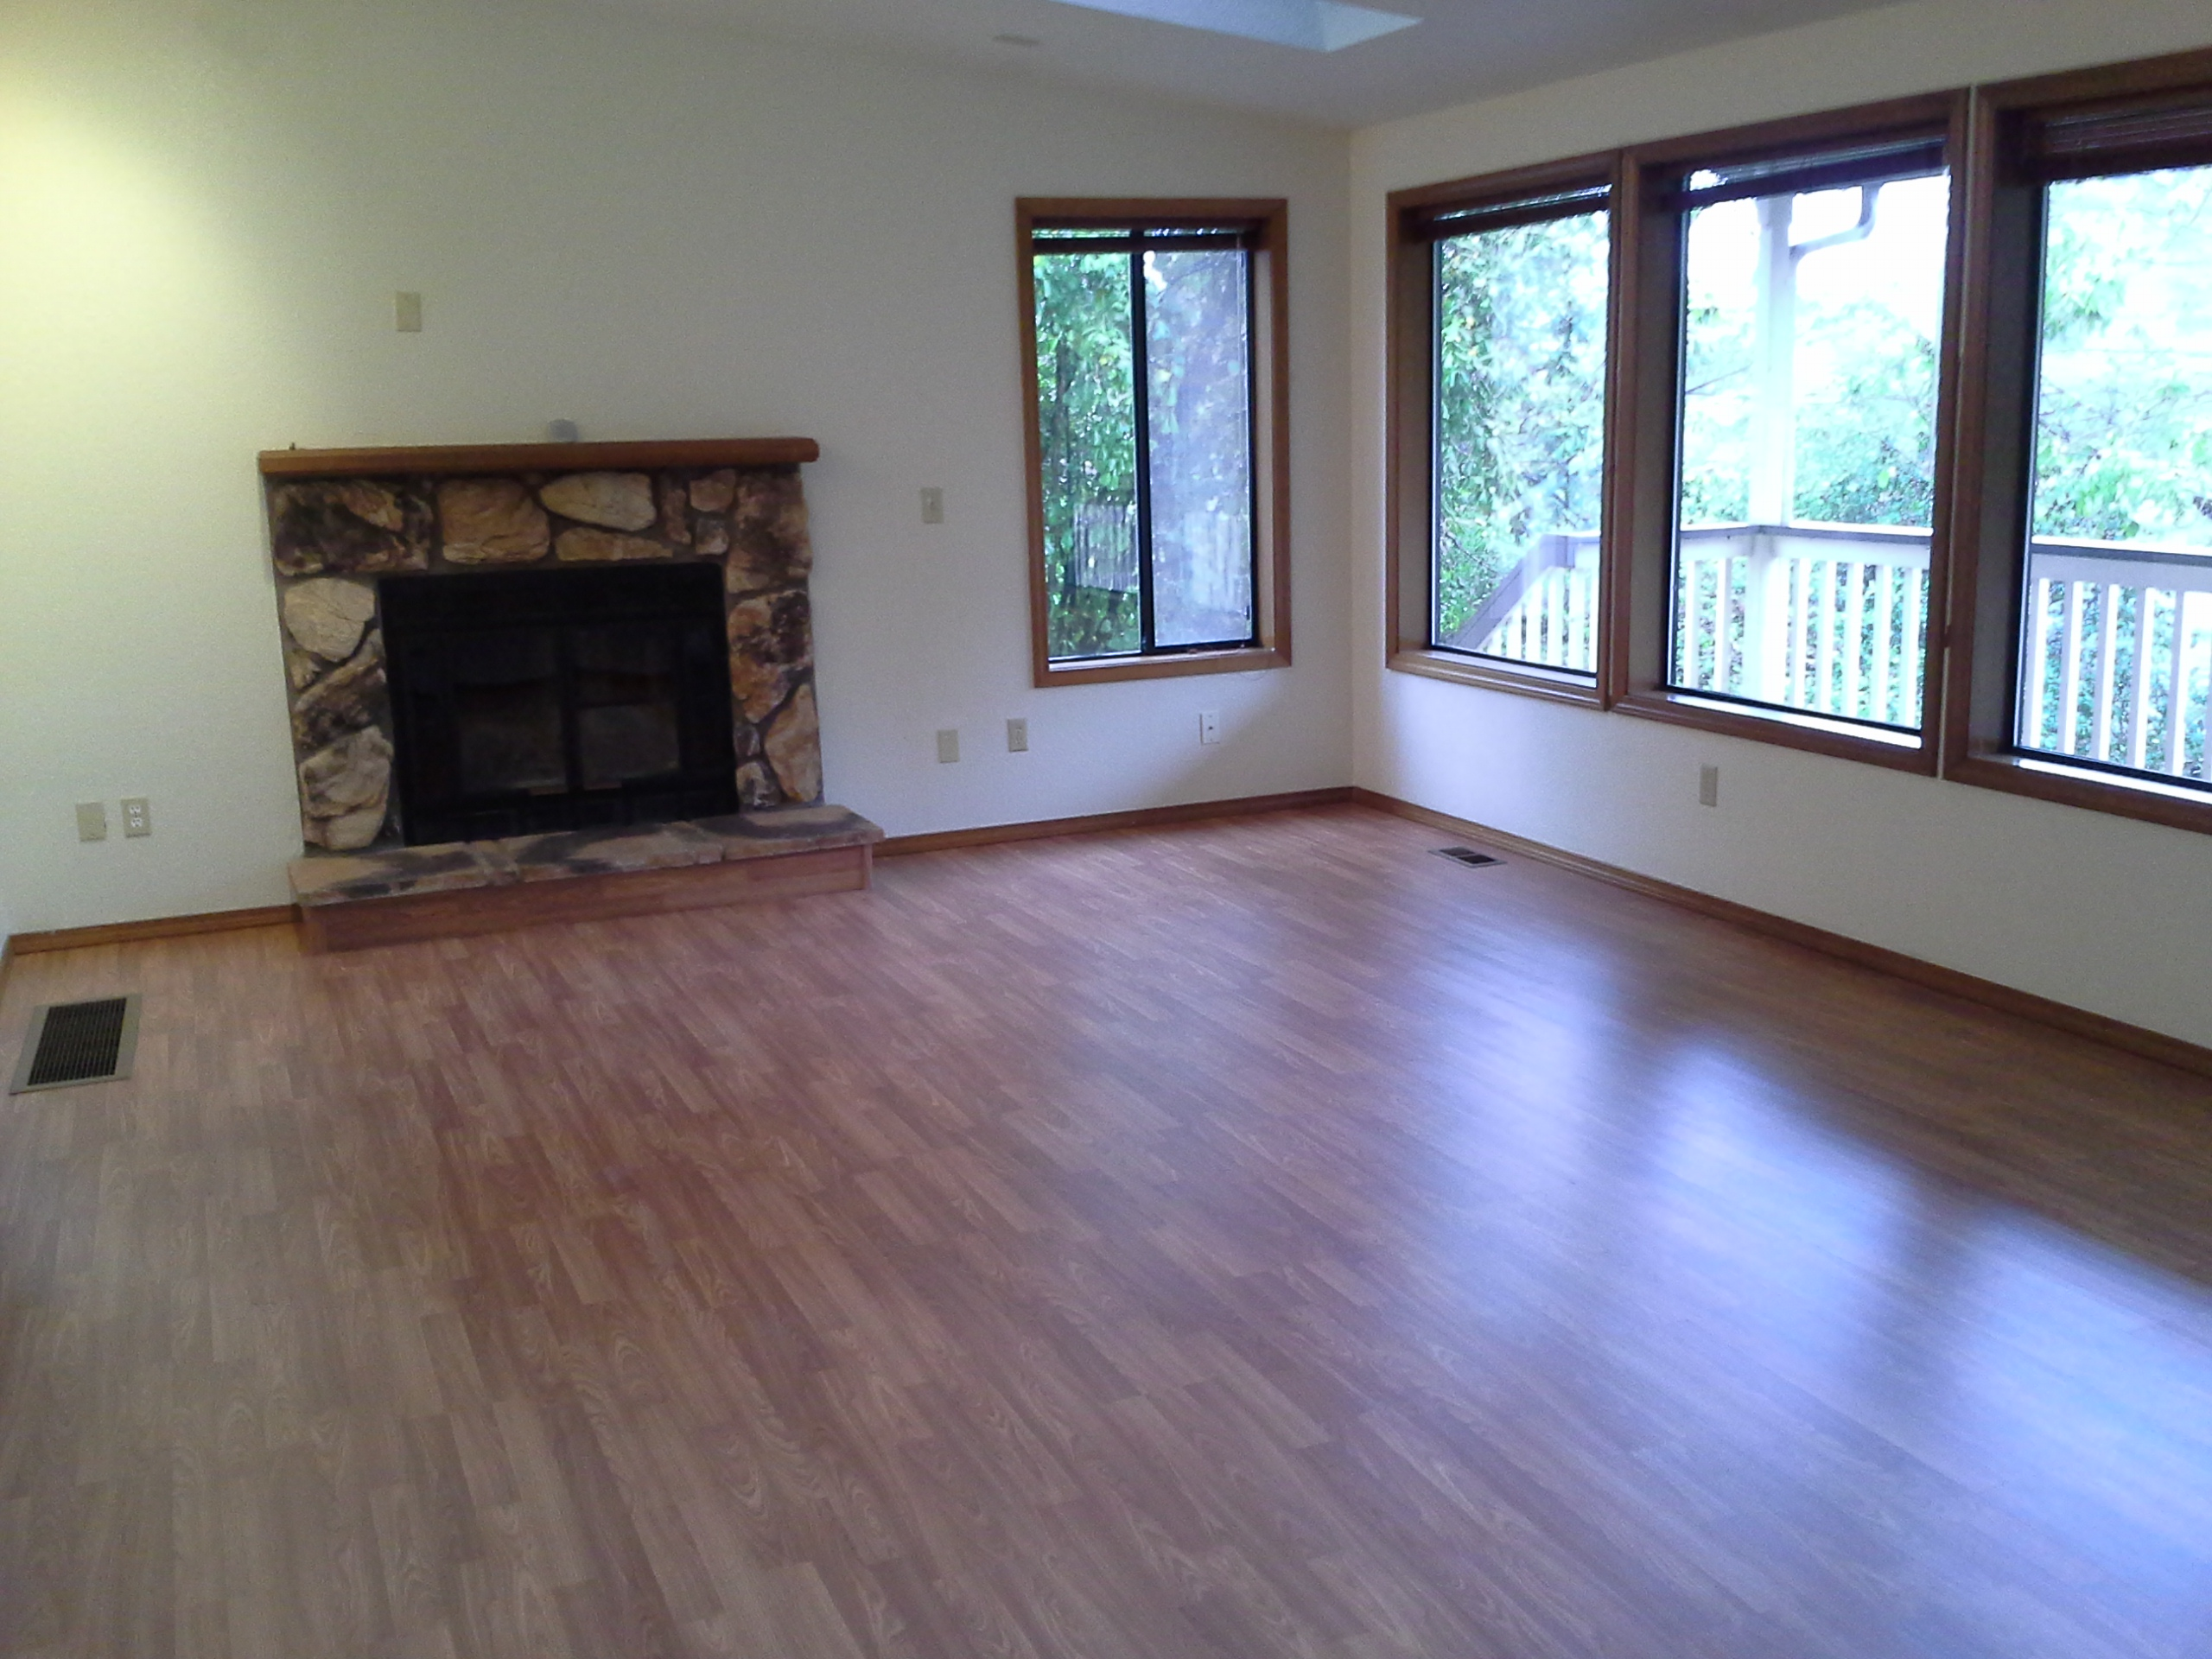 5br Lakefront Home Tumwater